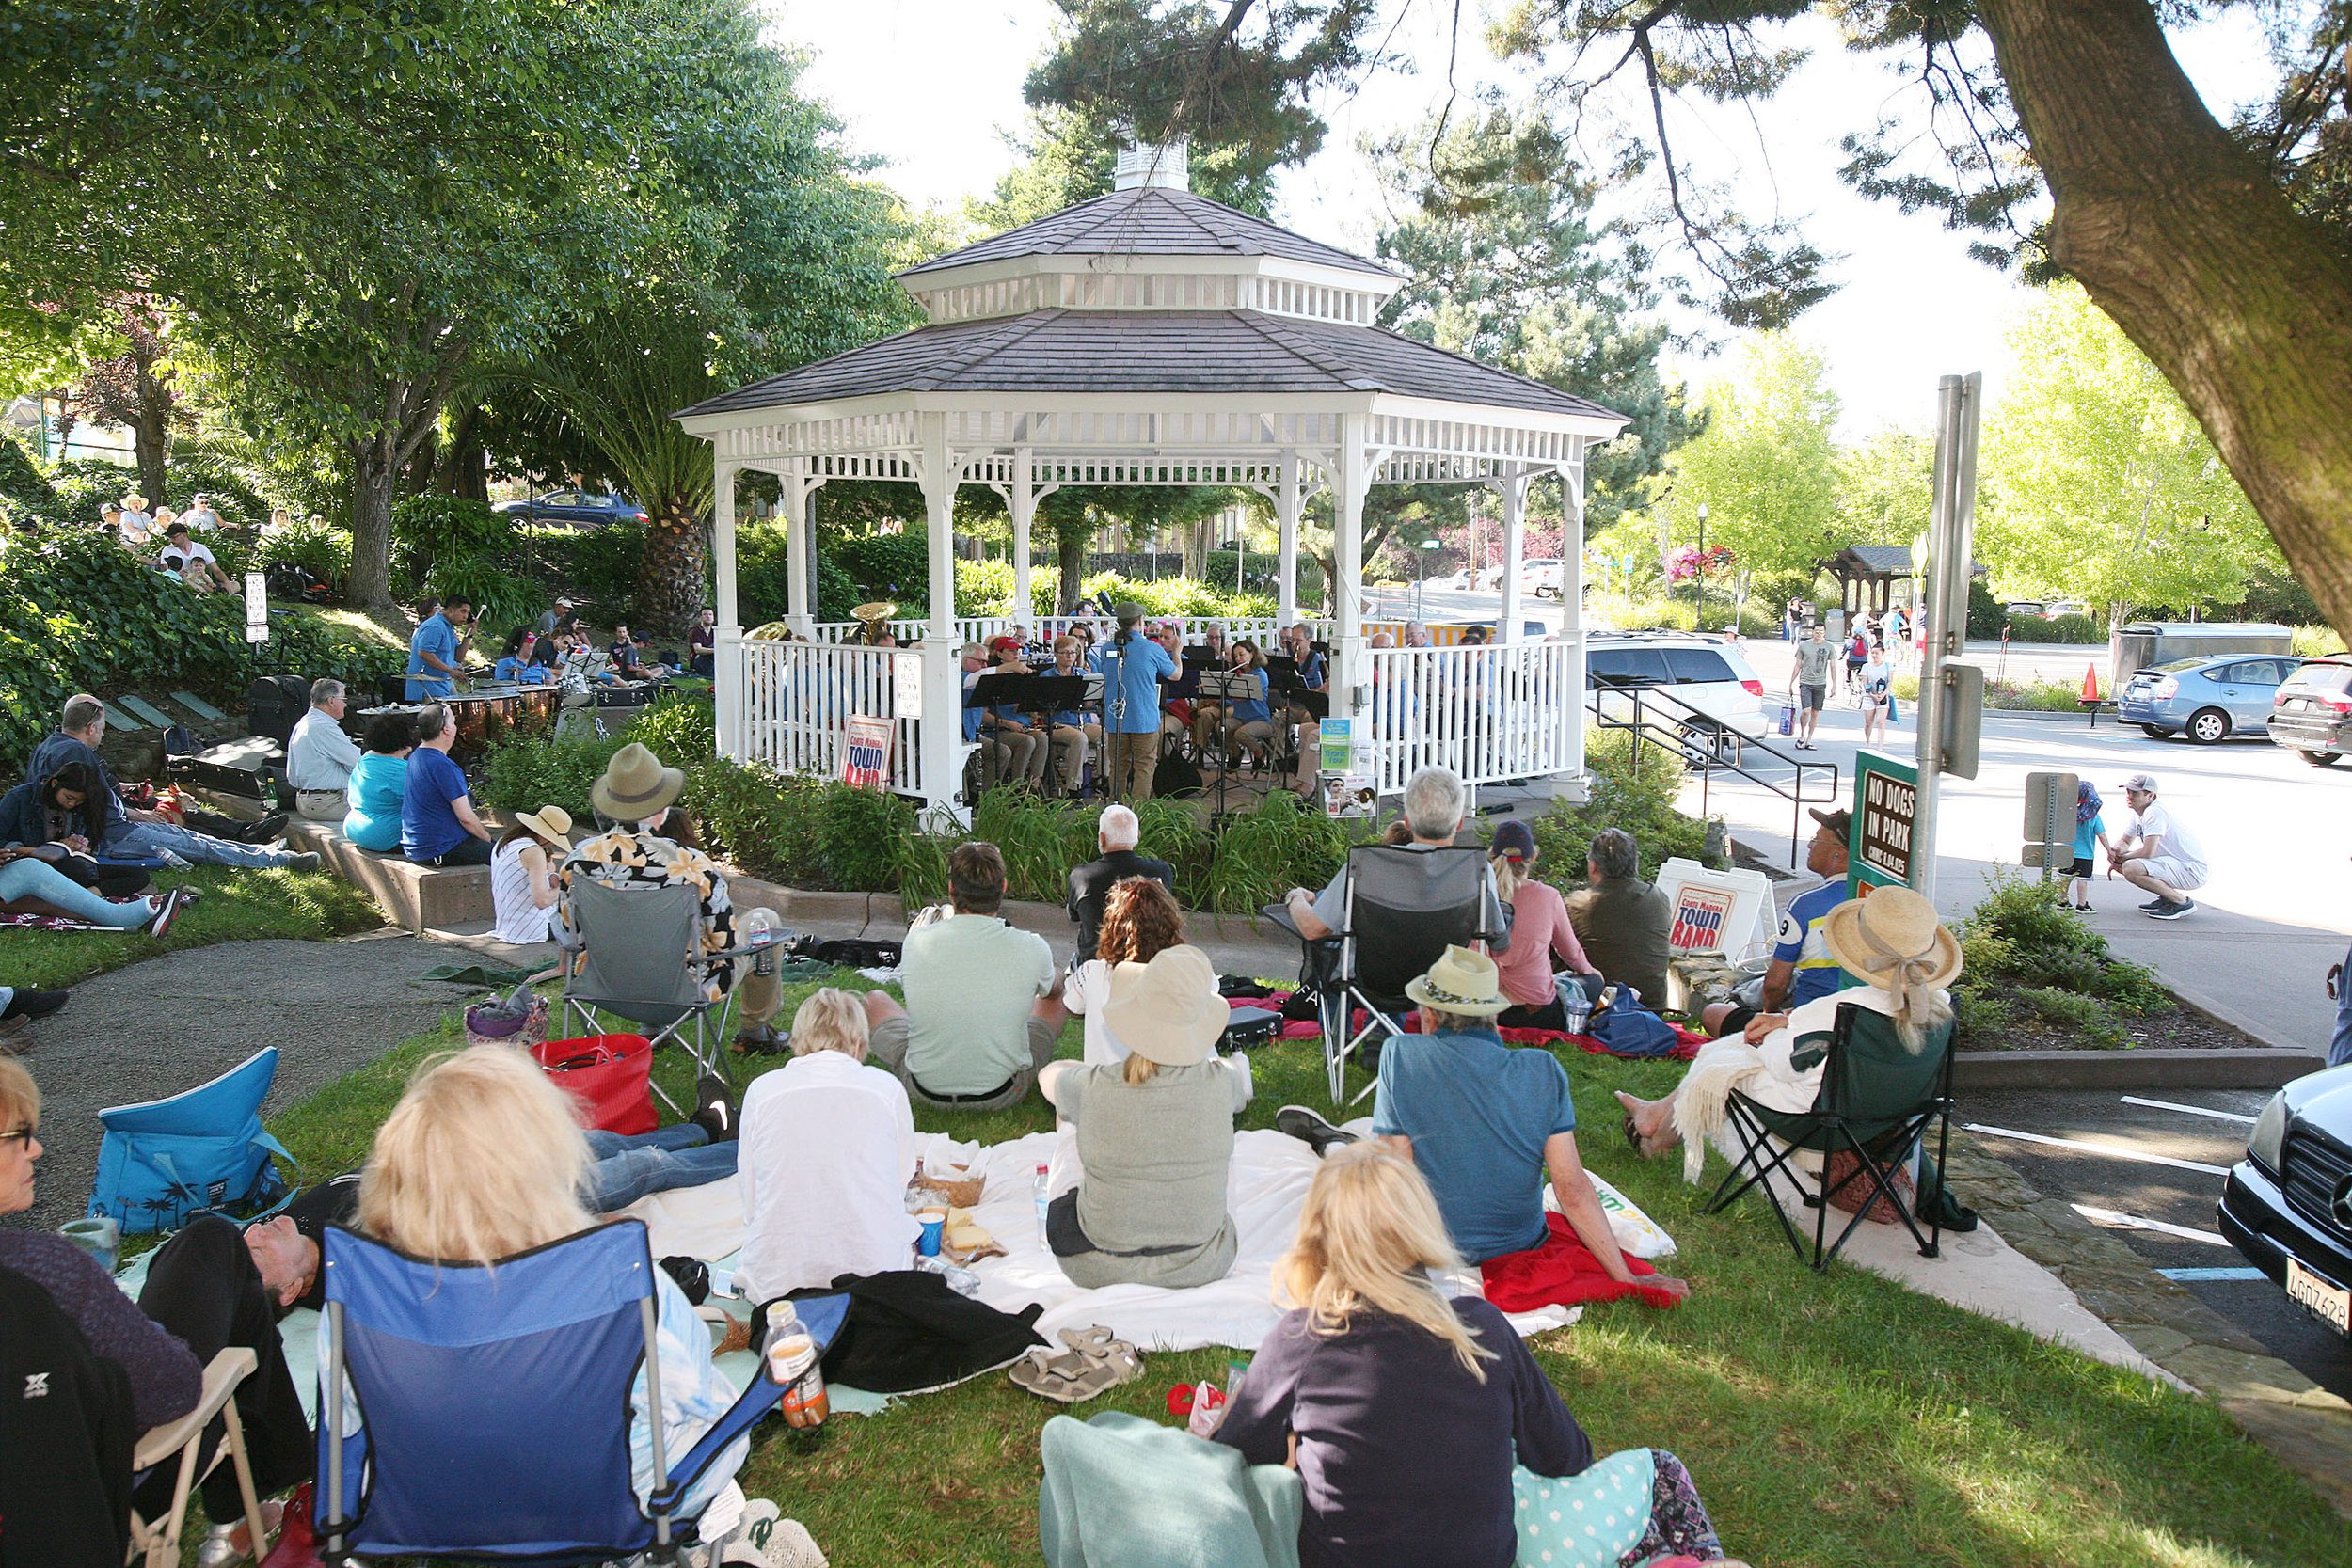 2019 Summer Concert - It was a beautiful day in the park and the music was lovely…